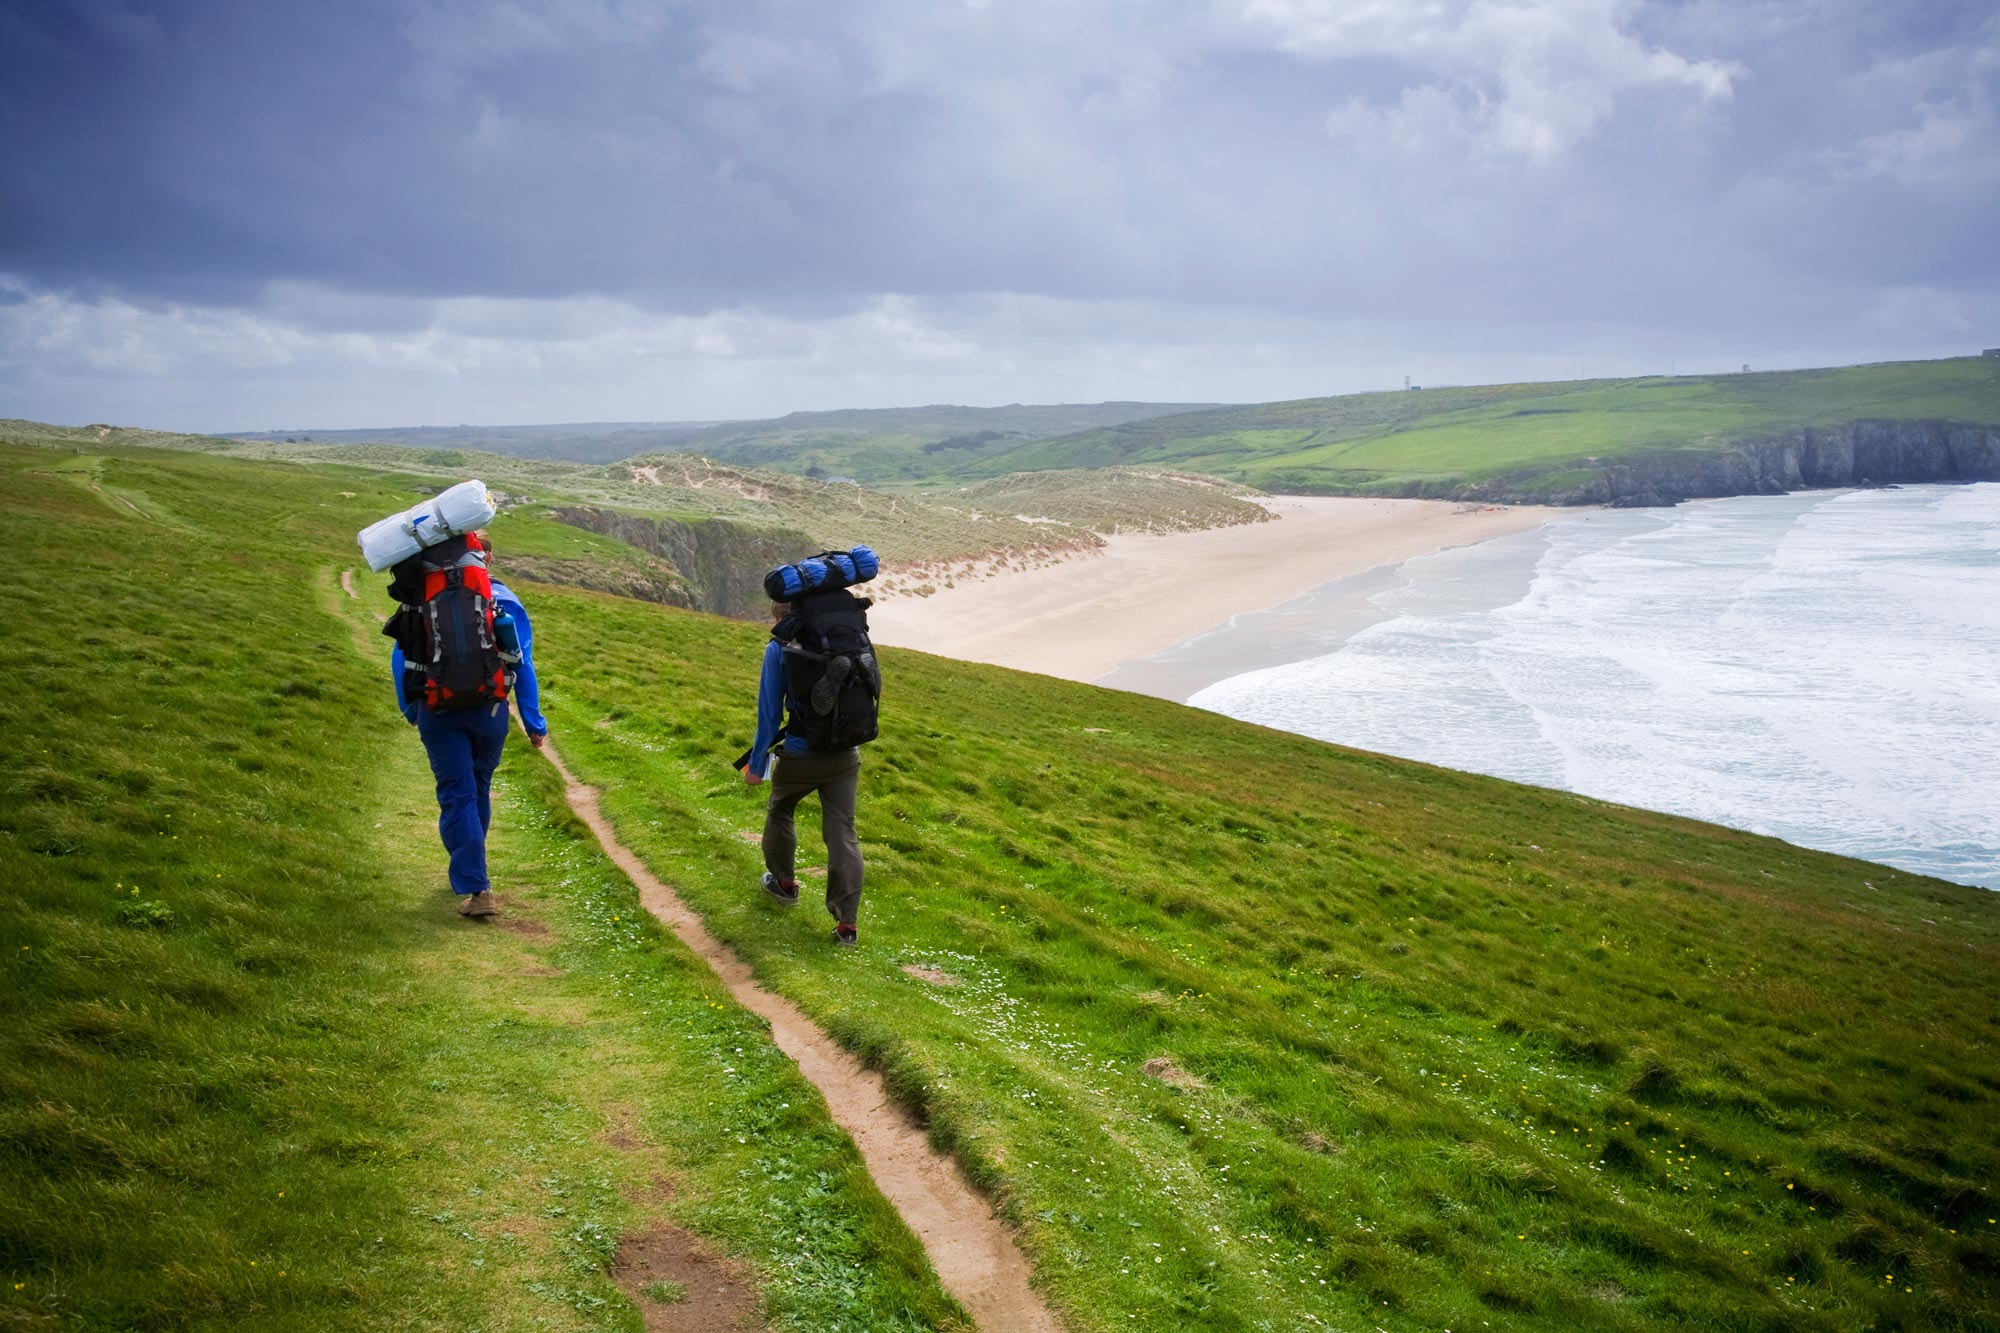 People walking the coastal path with views of the sea